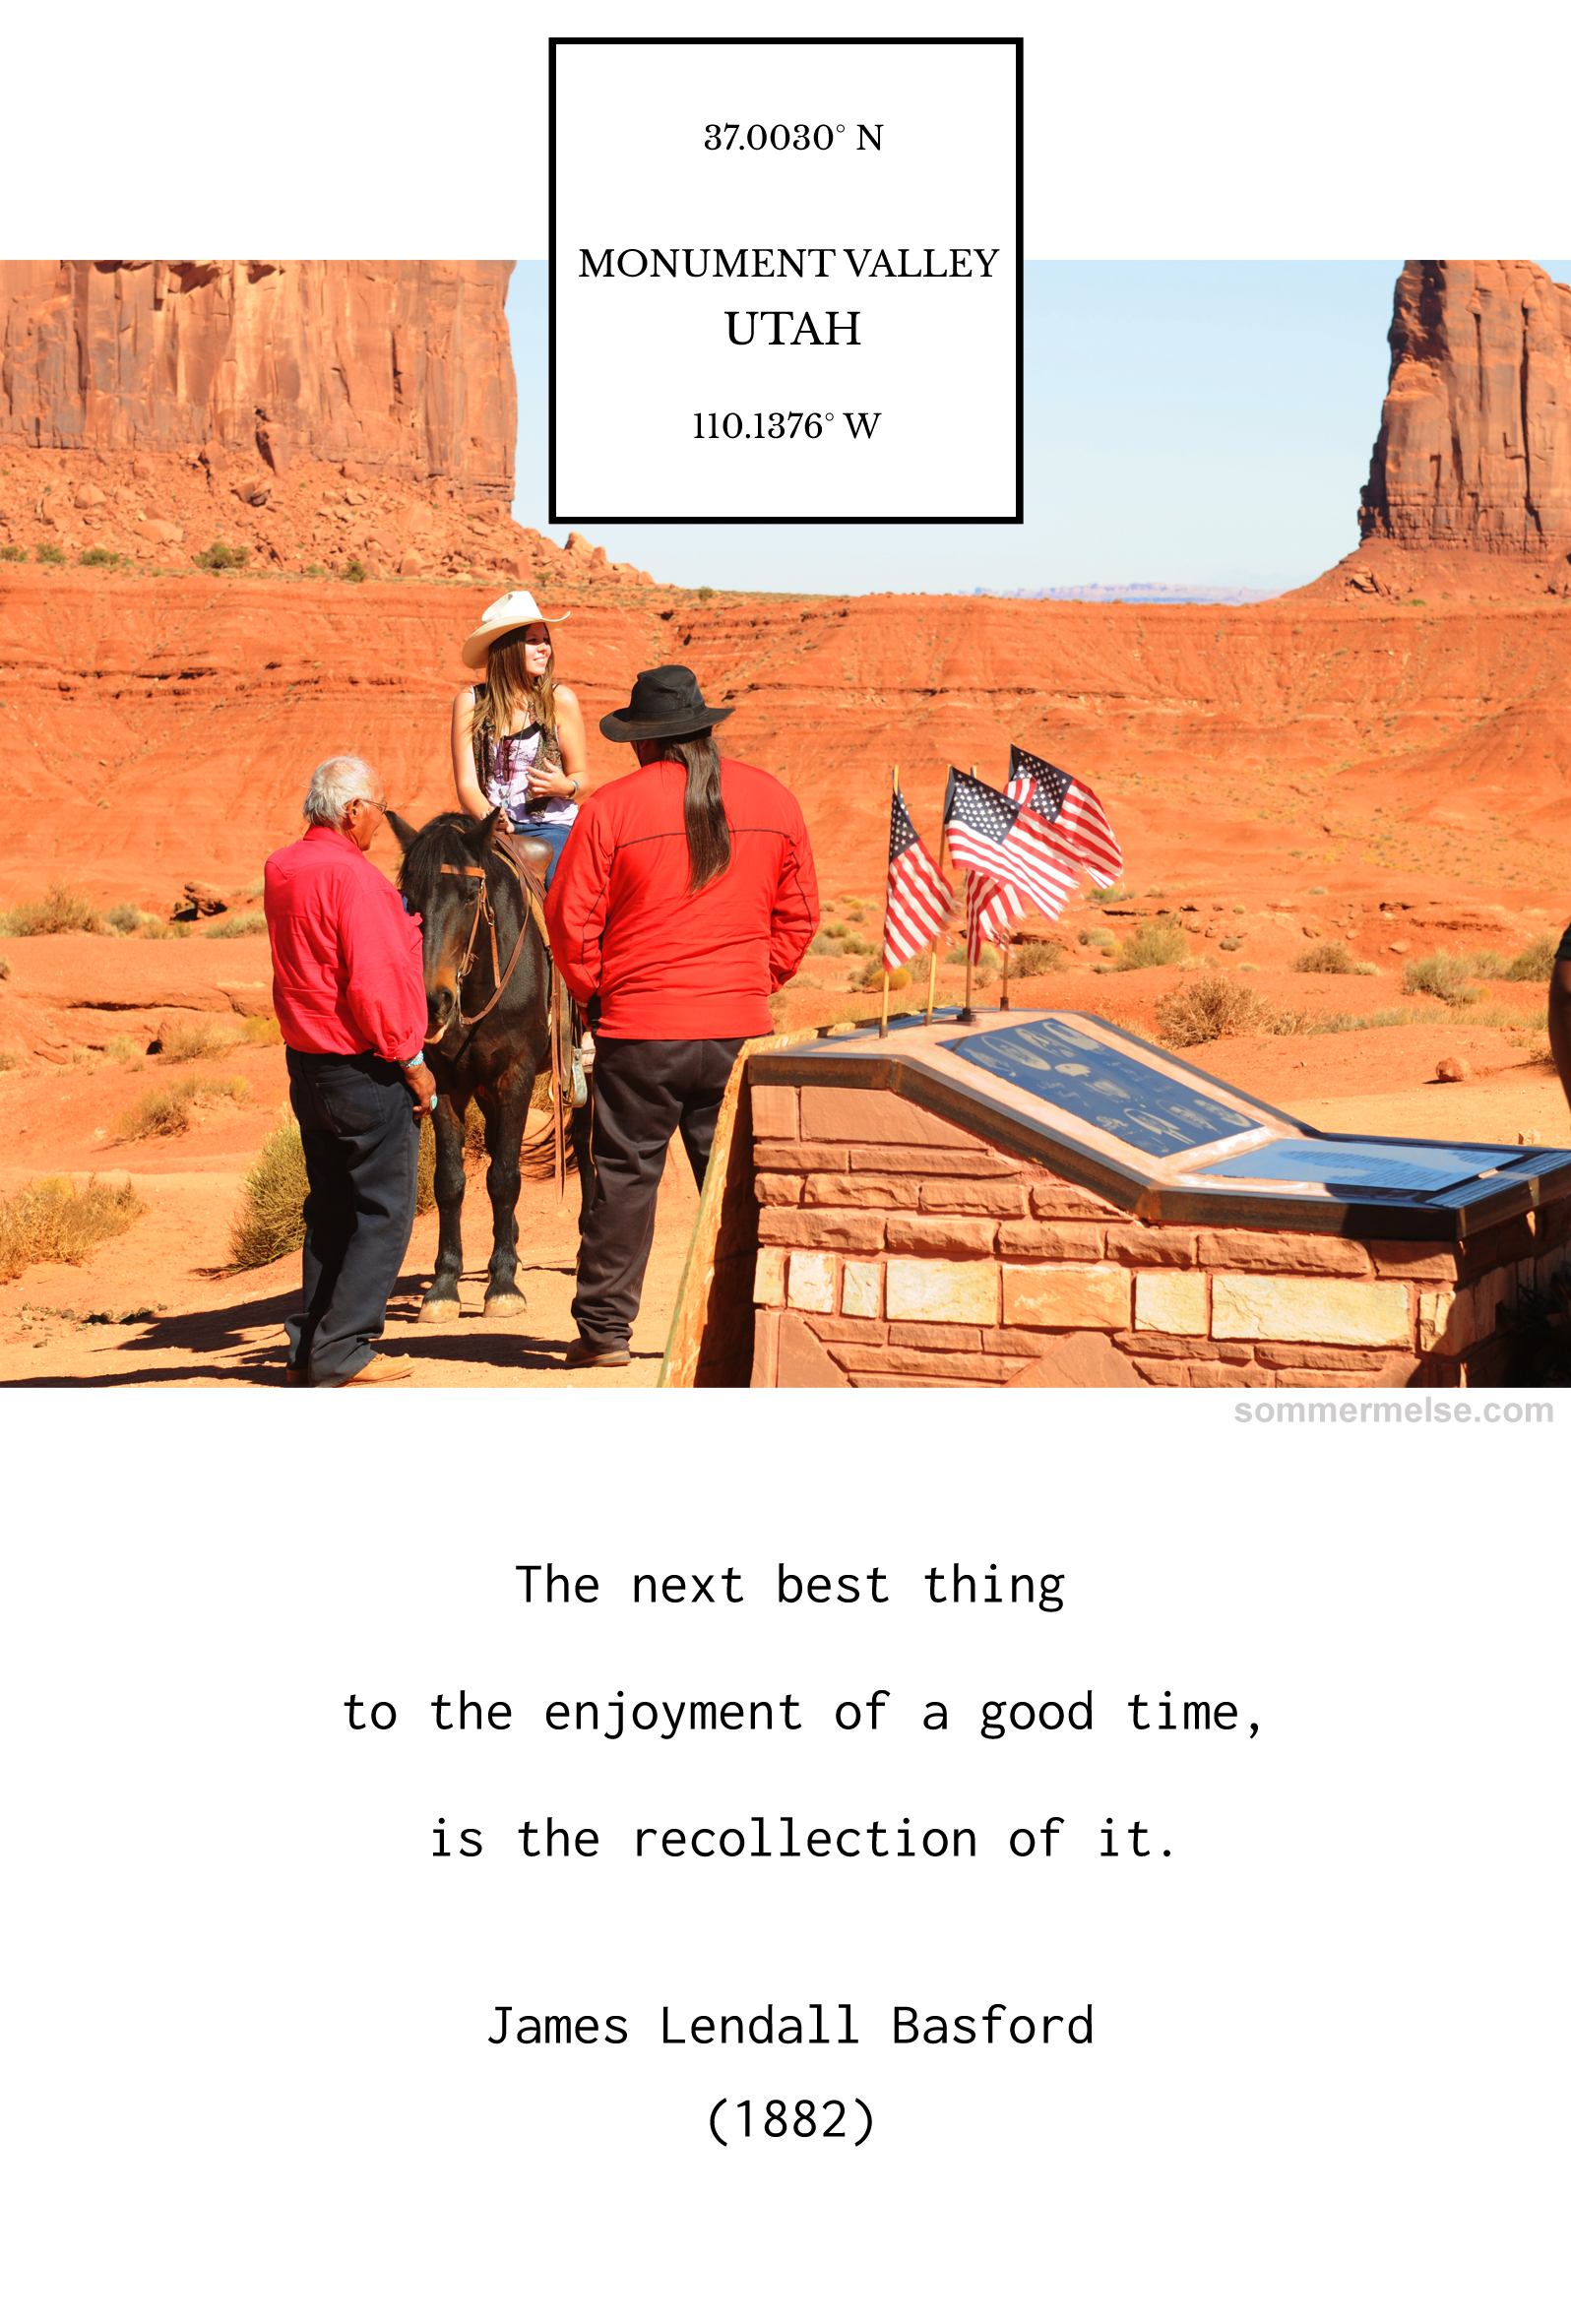 38_finding_wonder_monument_valley_utah_james_lendall_basford_quote